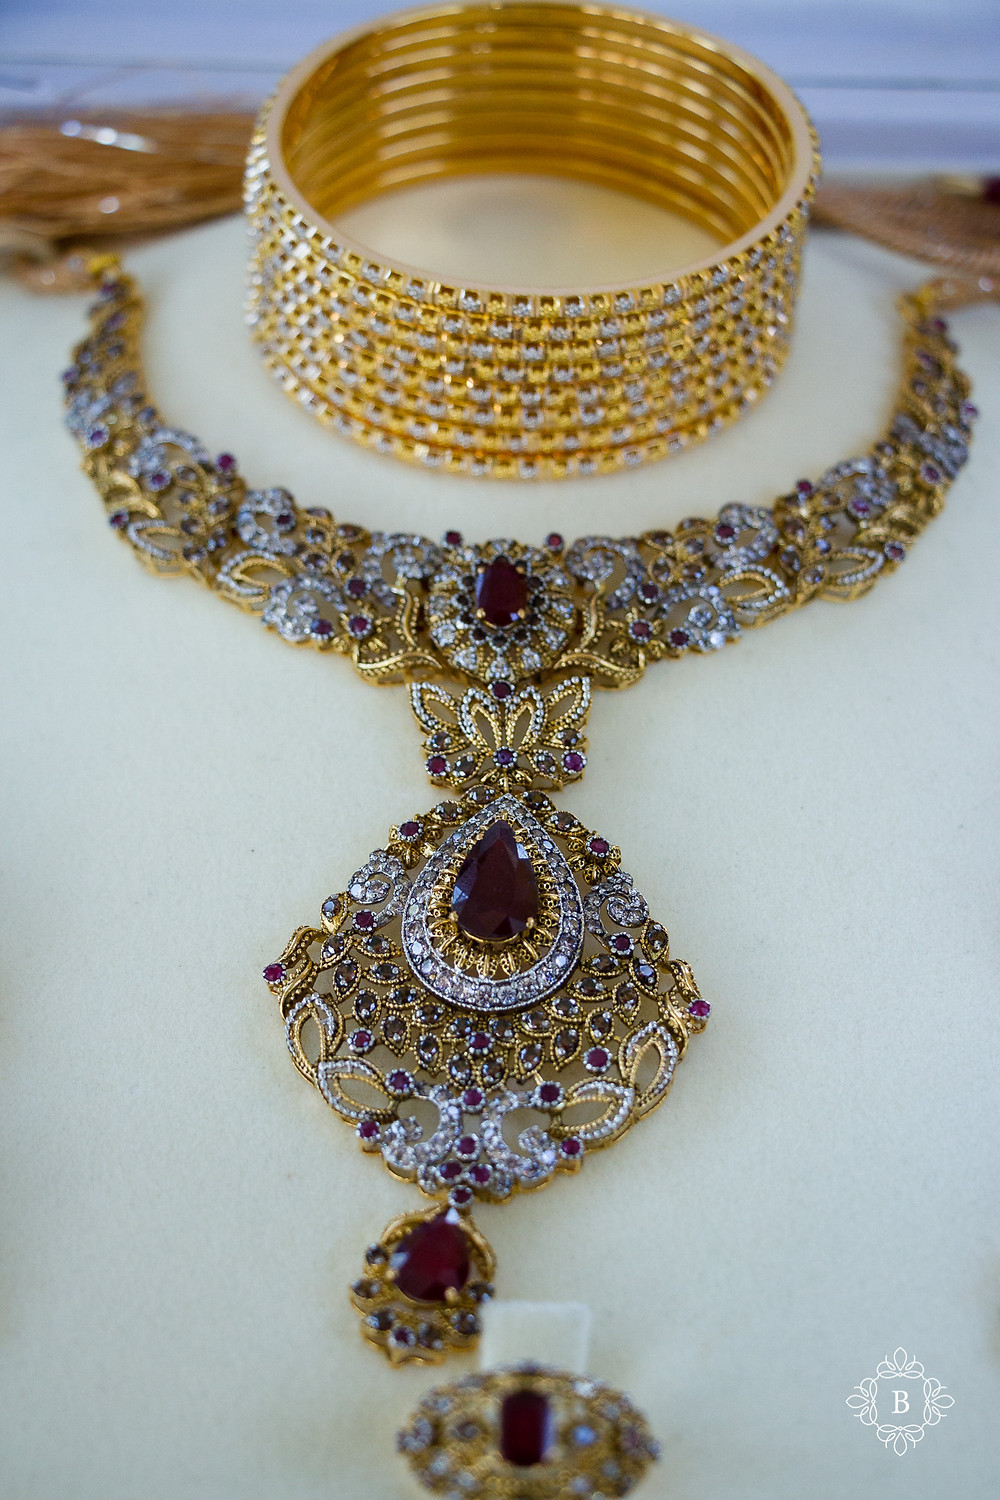 Northern Virginia Desi South Asian wedding bridal details necklace and bangles